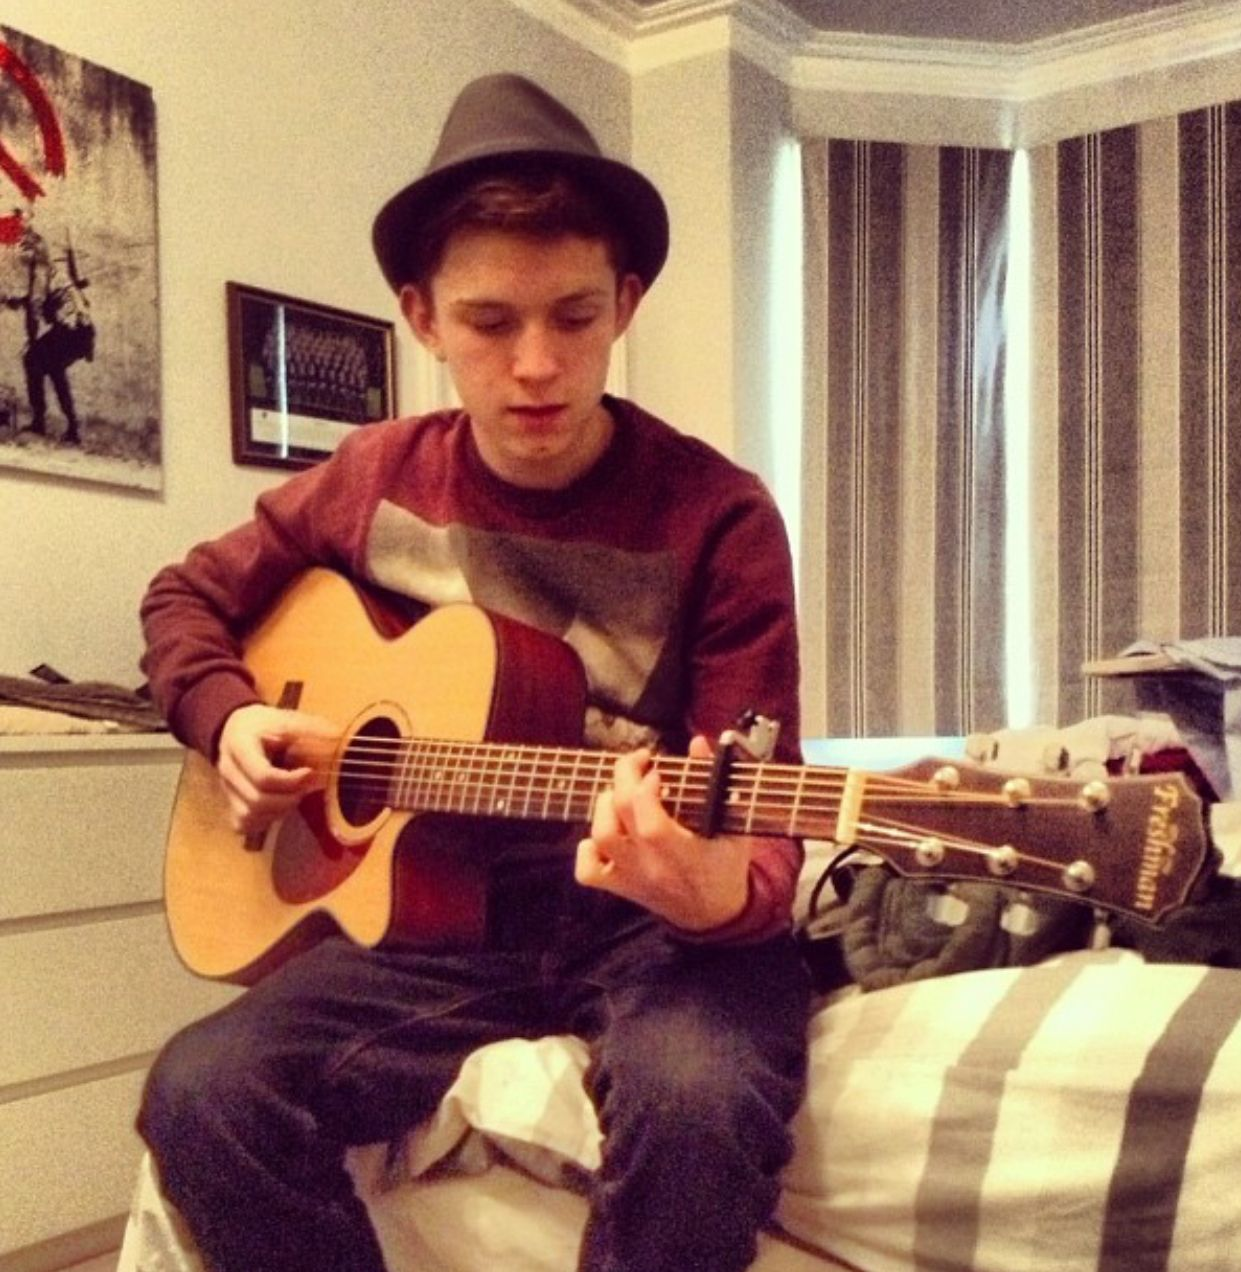 He can play the guitar?!!!!! I love him even more now